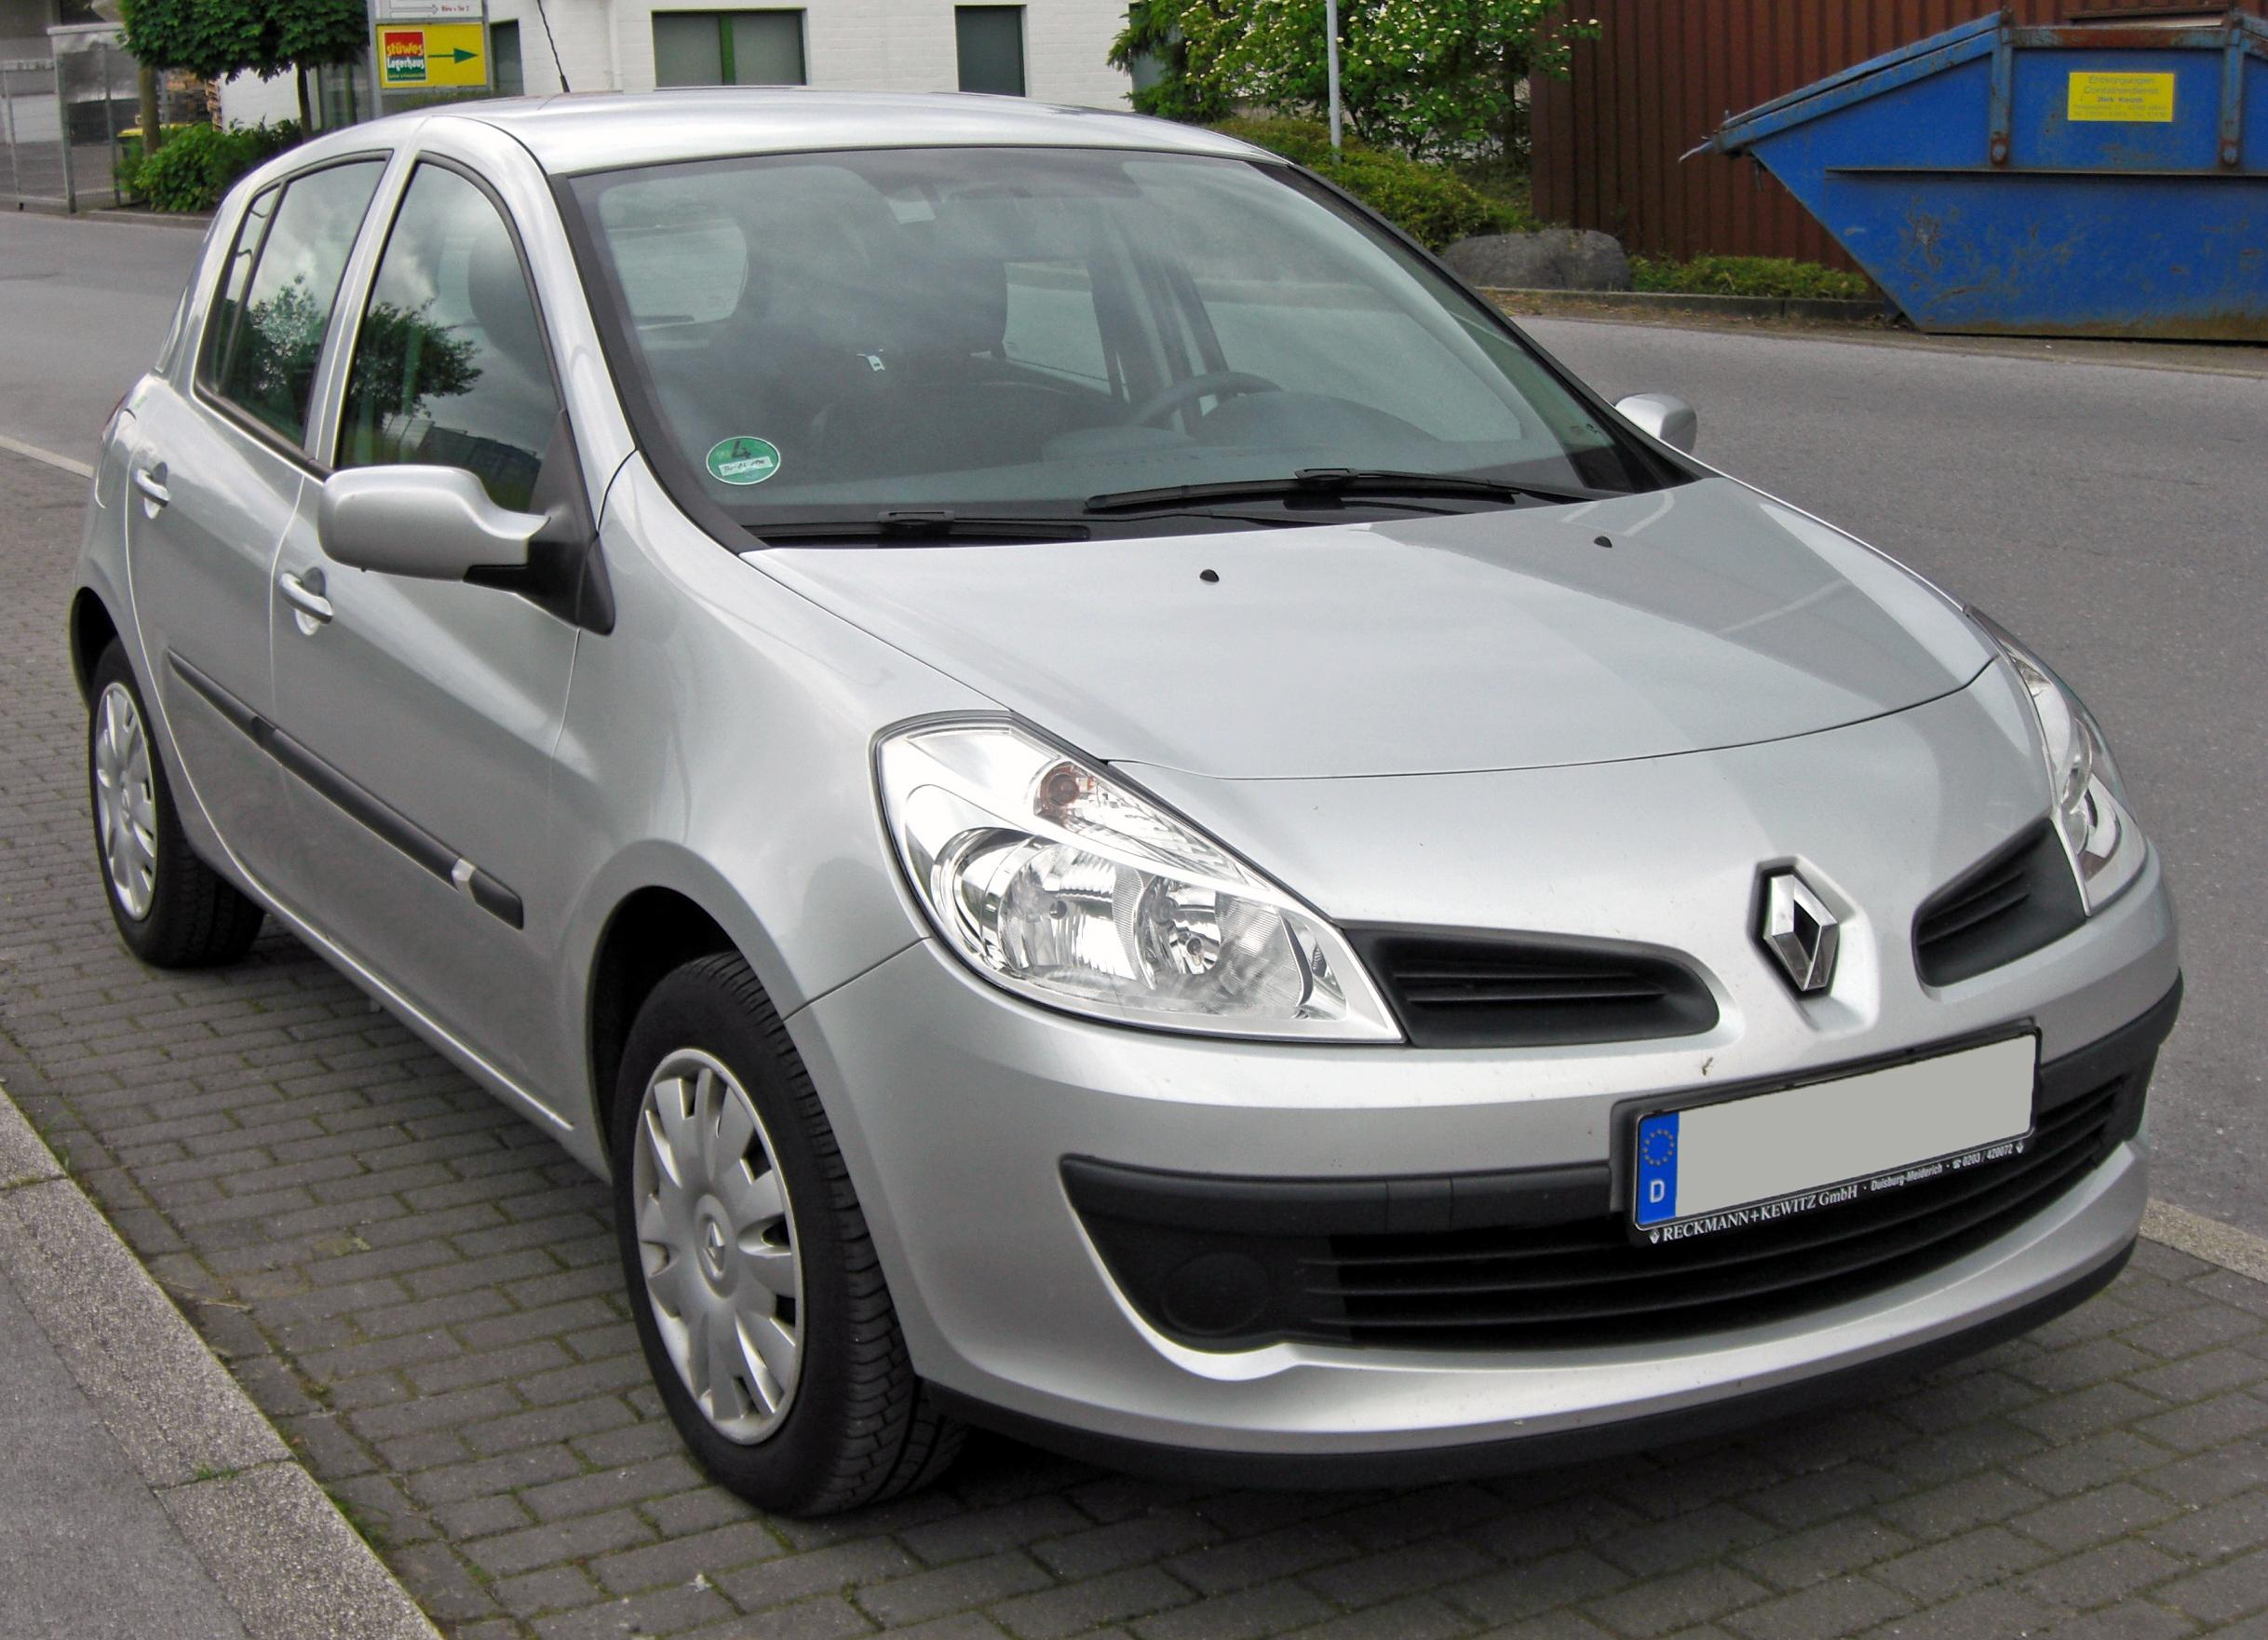 Description Renault Clio III 20090527 front.JPG